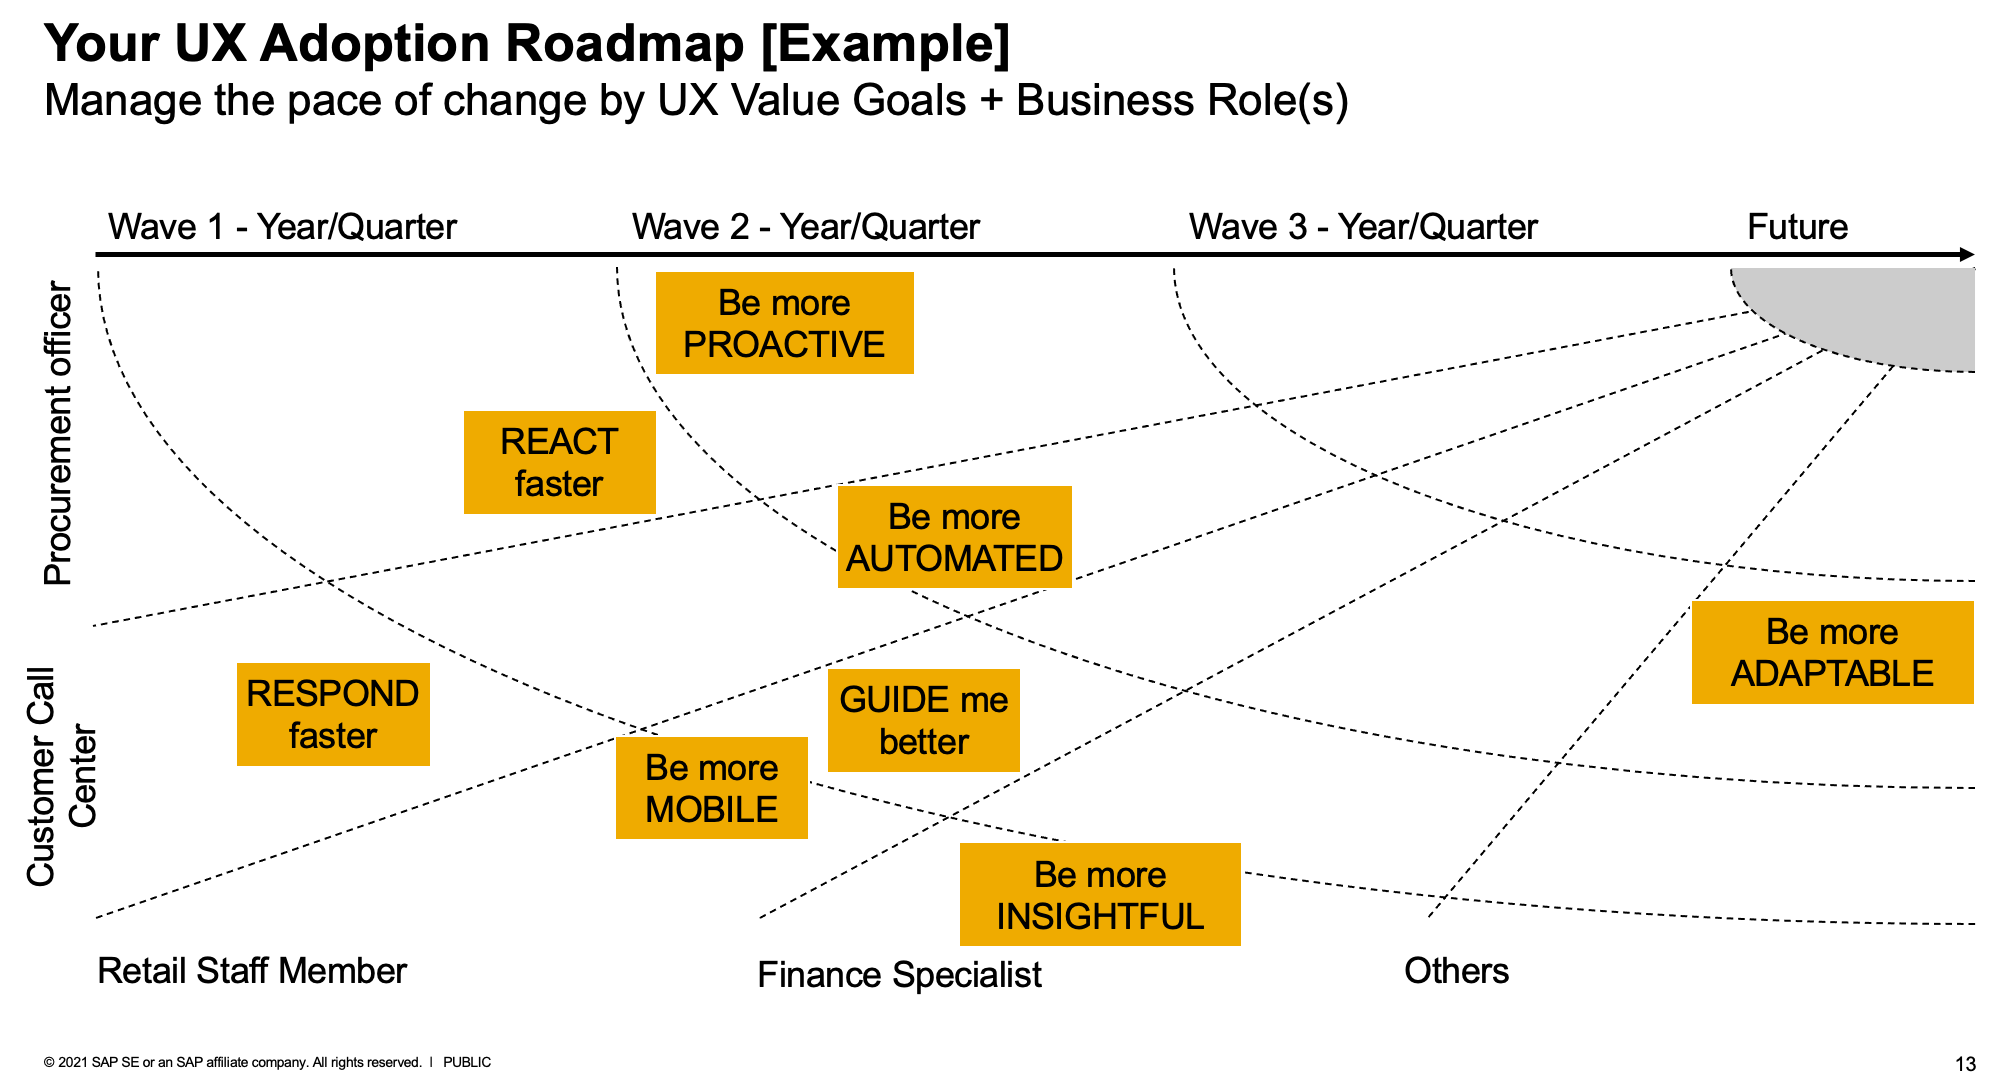 Example%20UX%20Adoption%20Roadmap%20based%20on%20UX%20Value%20Goals%20for%20target%20Business%20Roles